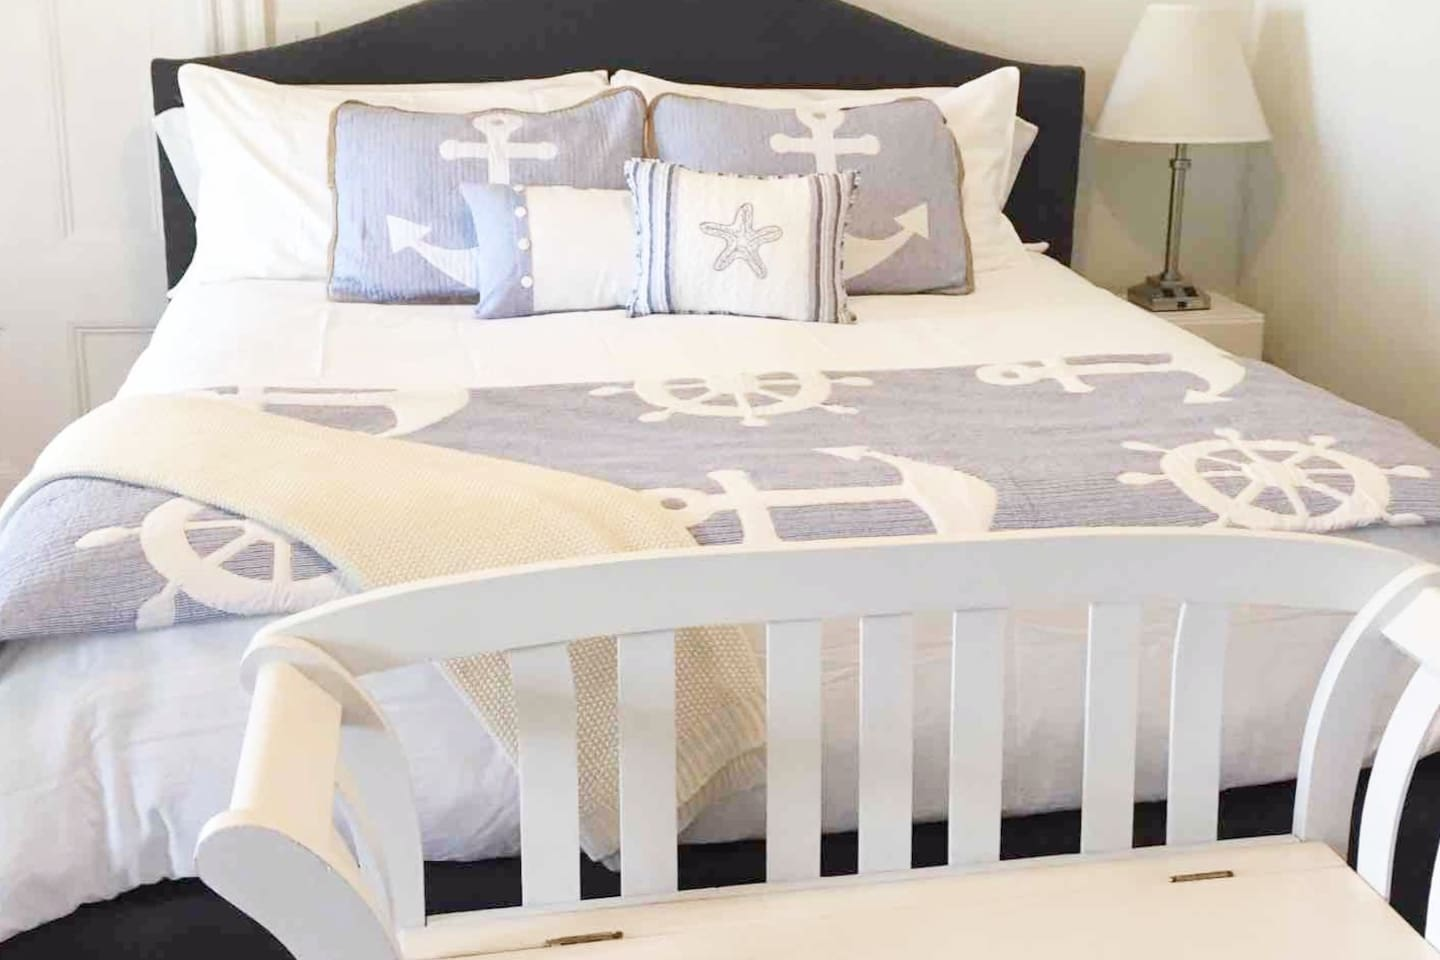 Float Away in this Super comfy King Size Bed with Beautiful Seaside Bedding